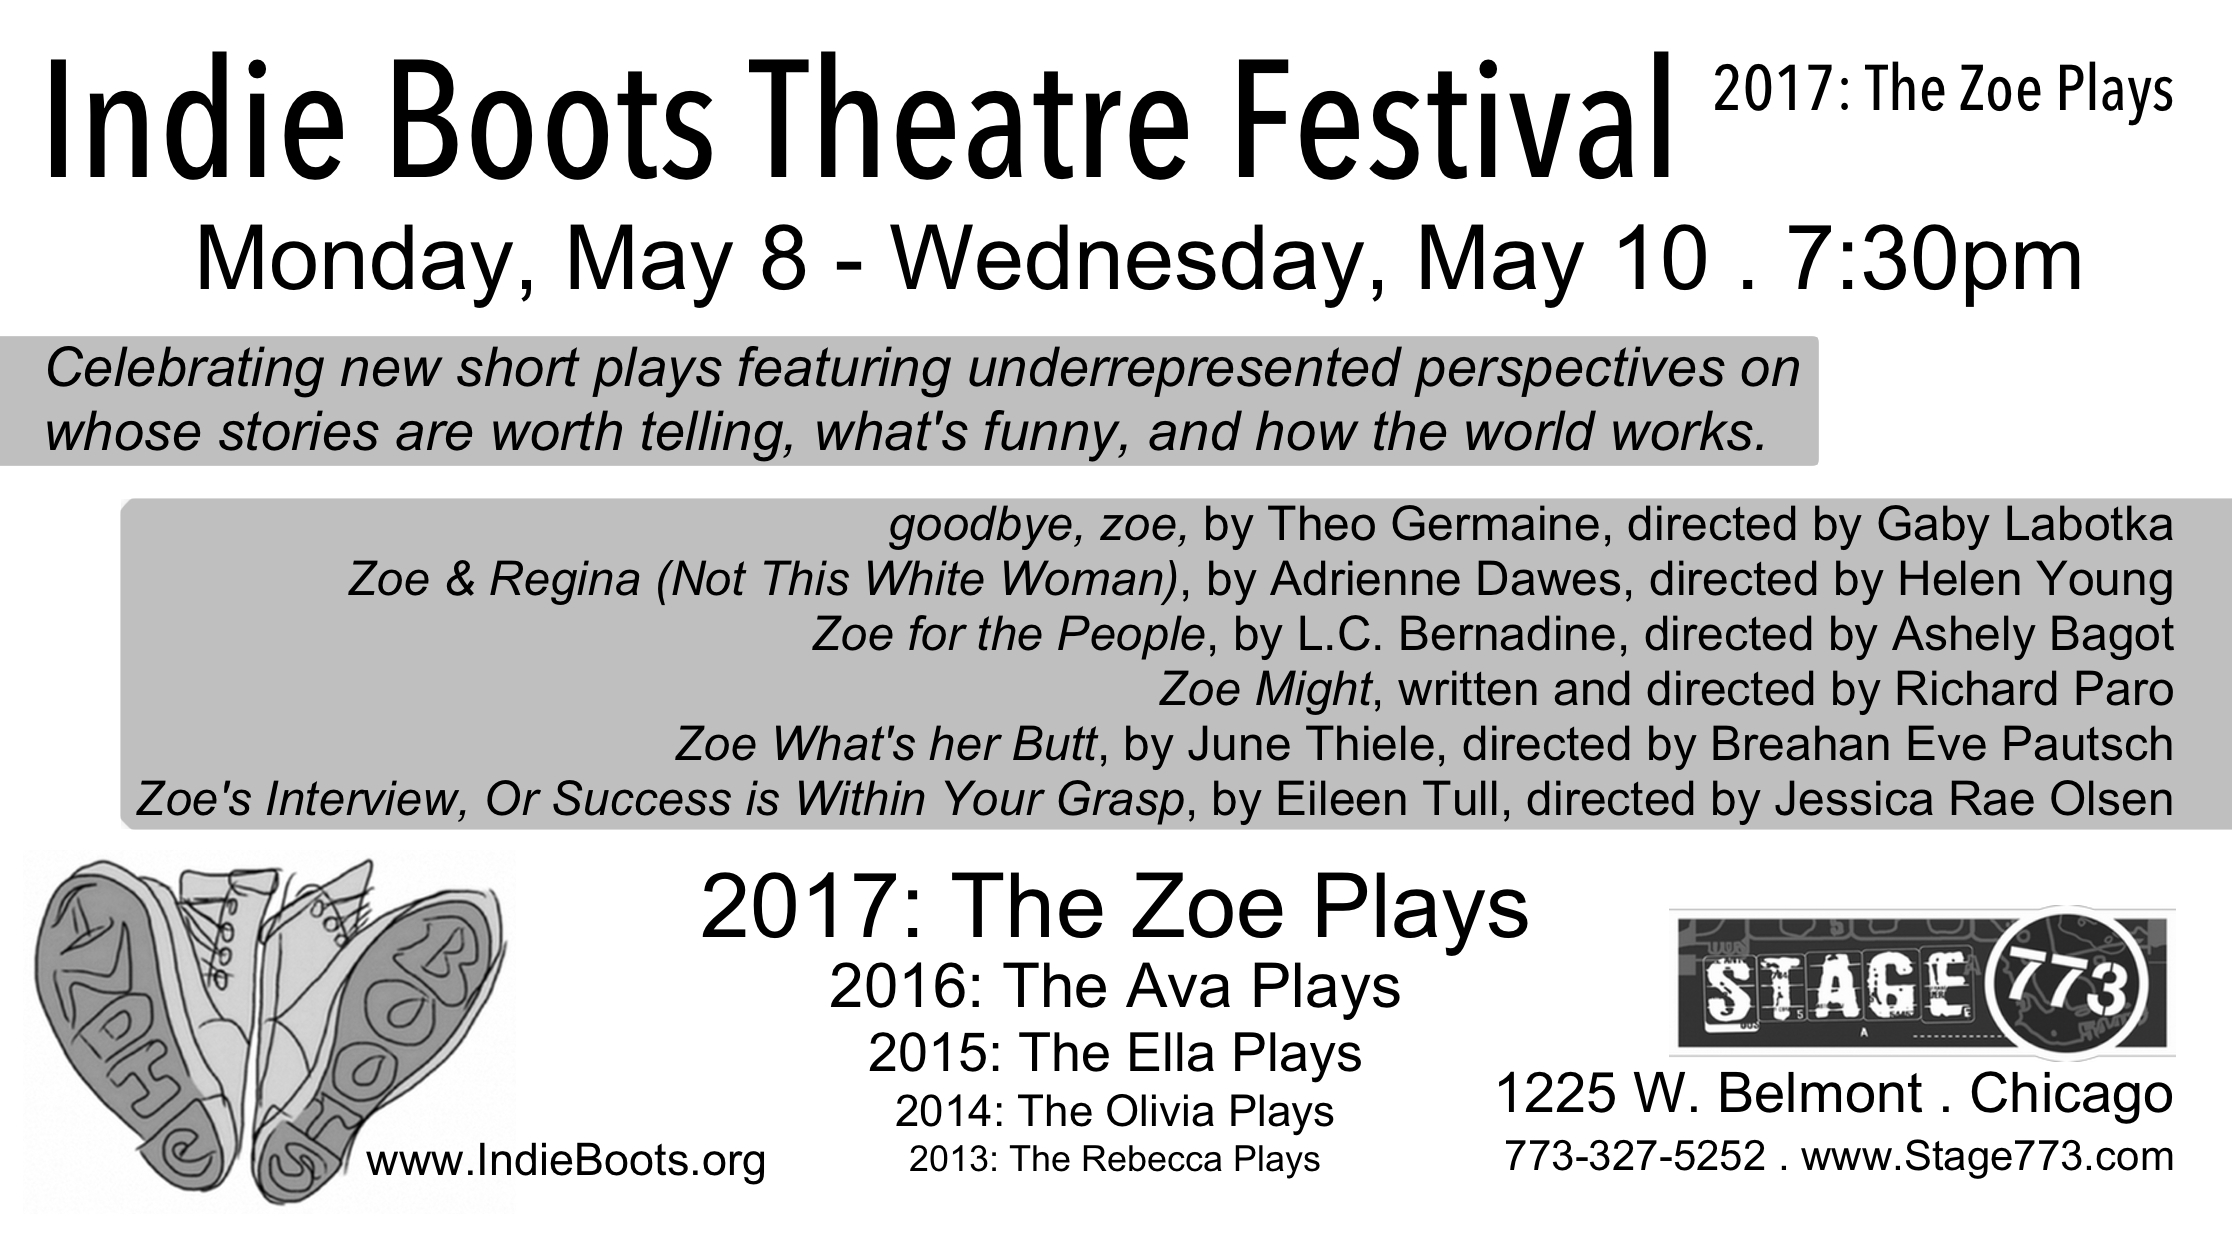 Indie Boots Theatre Festival 2017: The Zoe Plays postcard listing plays, writers, and directors